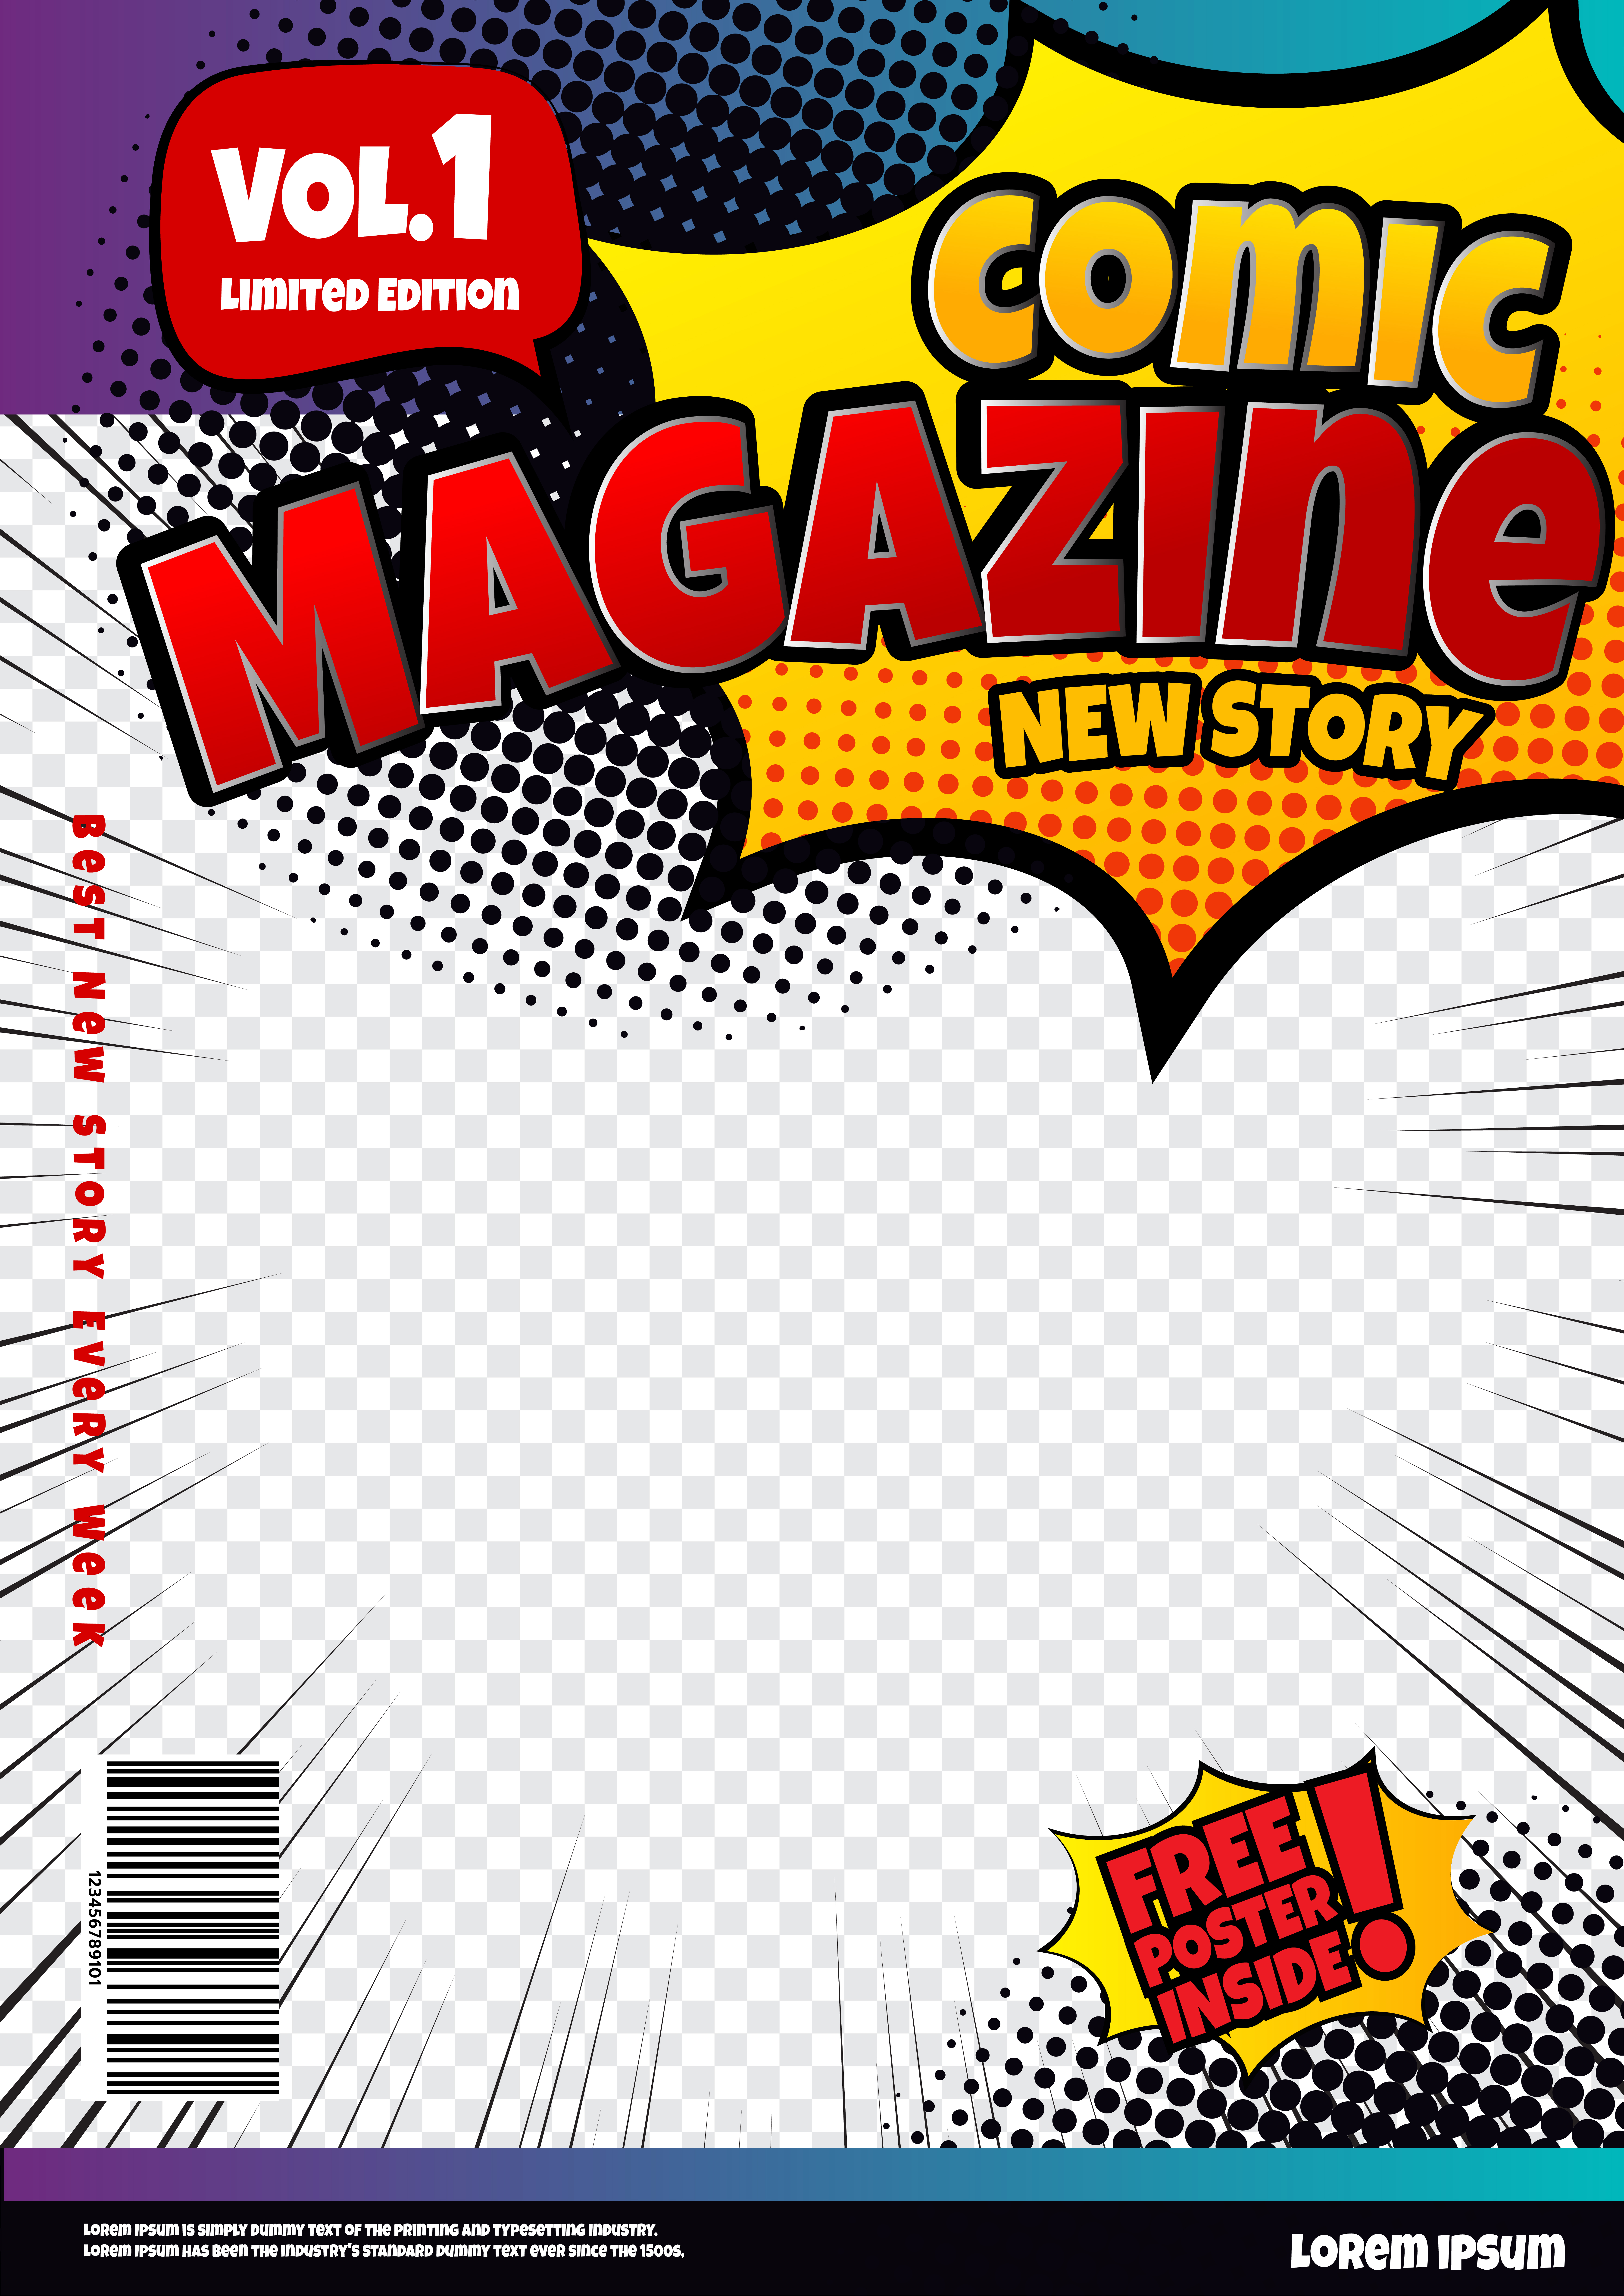 Comic Book Cover Template from static.vecteezy.com